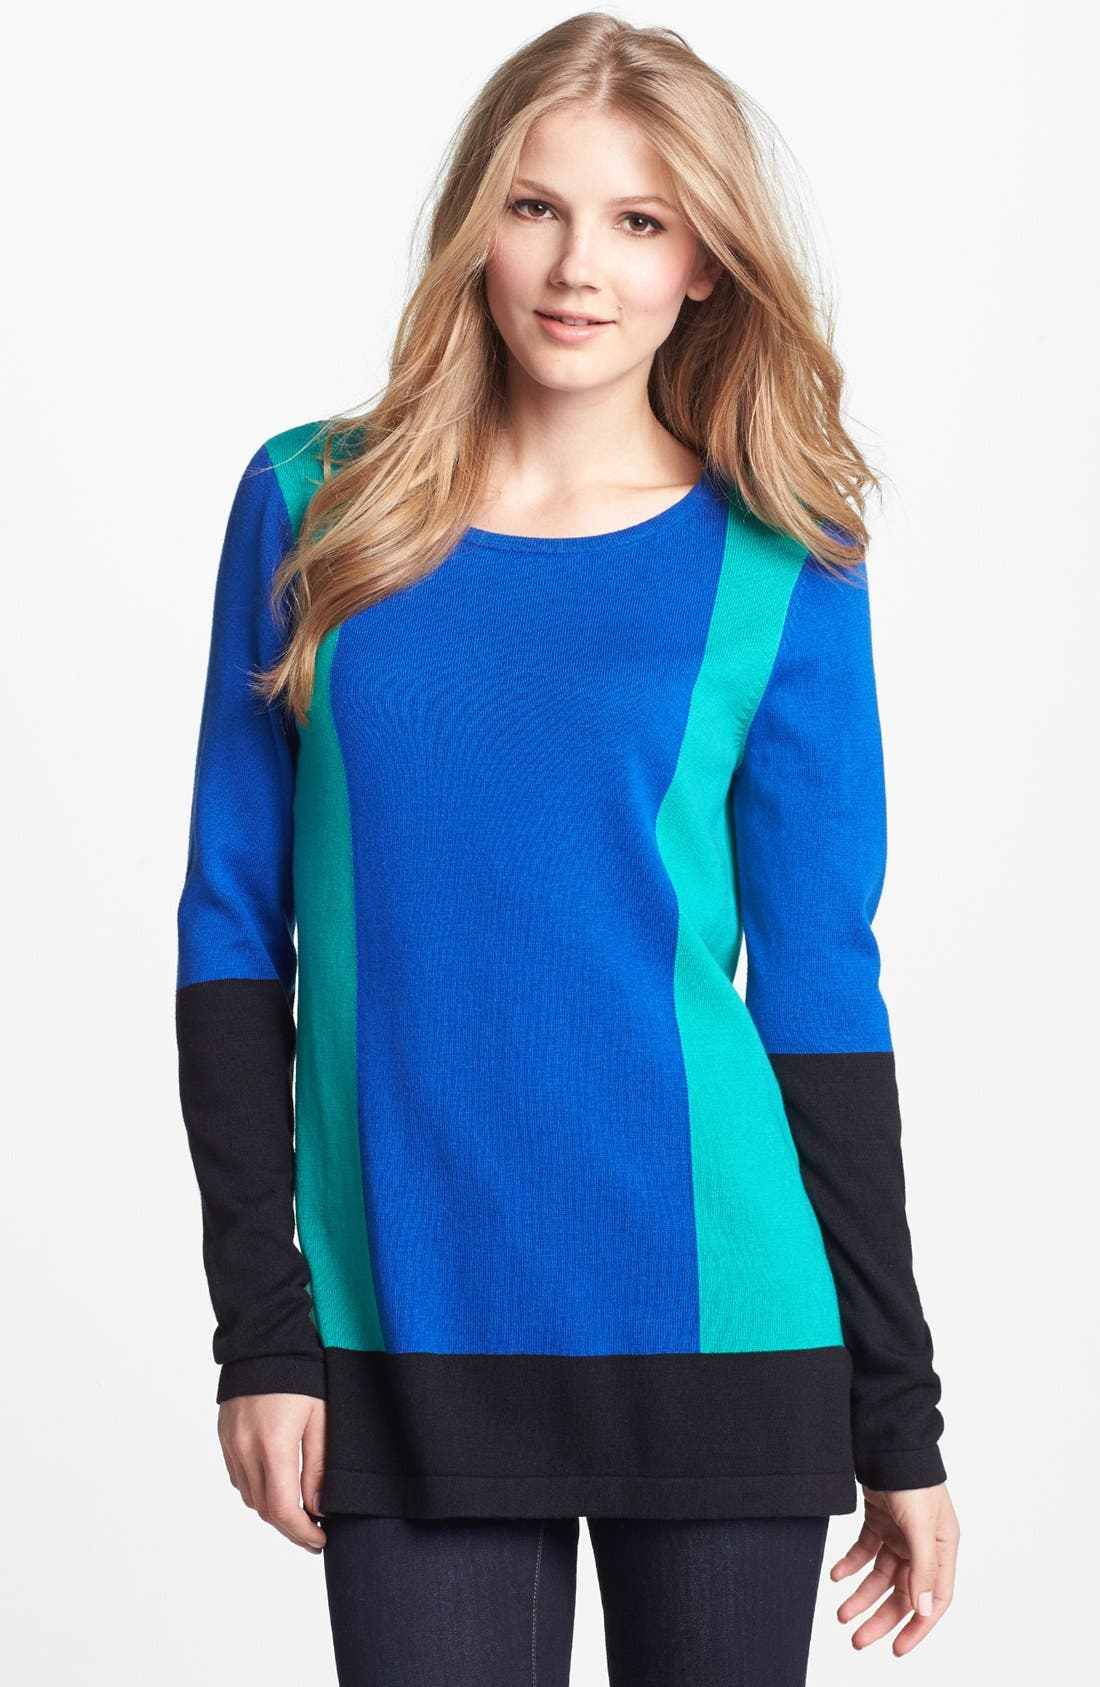 Alternate Image 1 Selected - Vince Camuto Colorblock Cotton Blend Sweater (Petite)